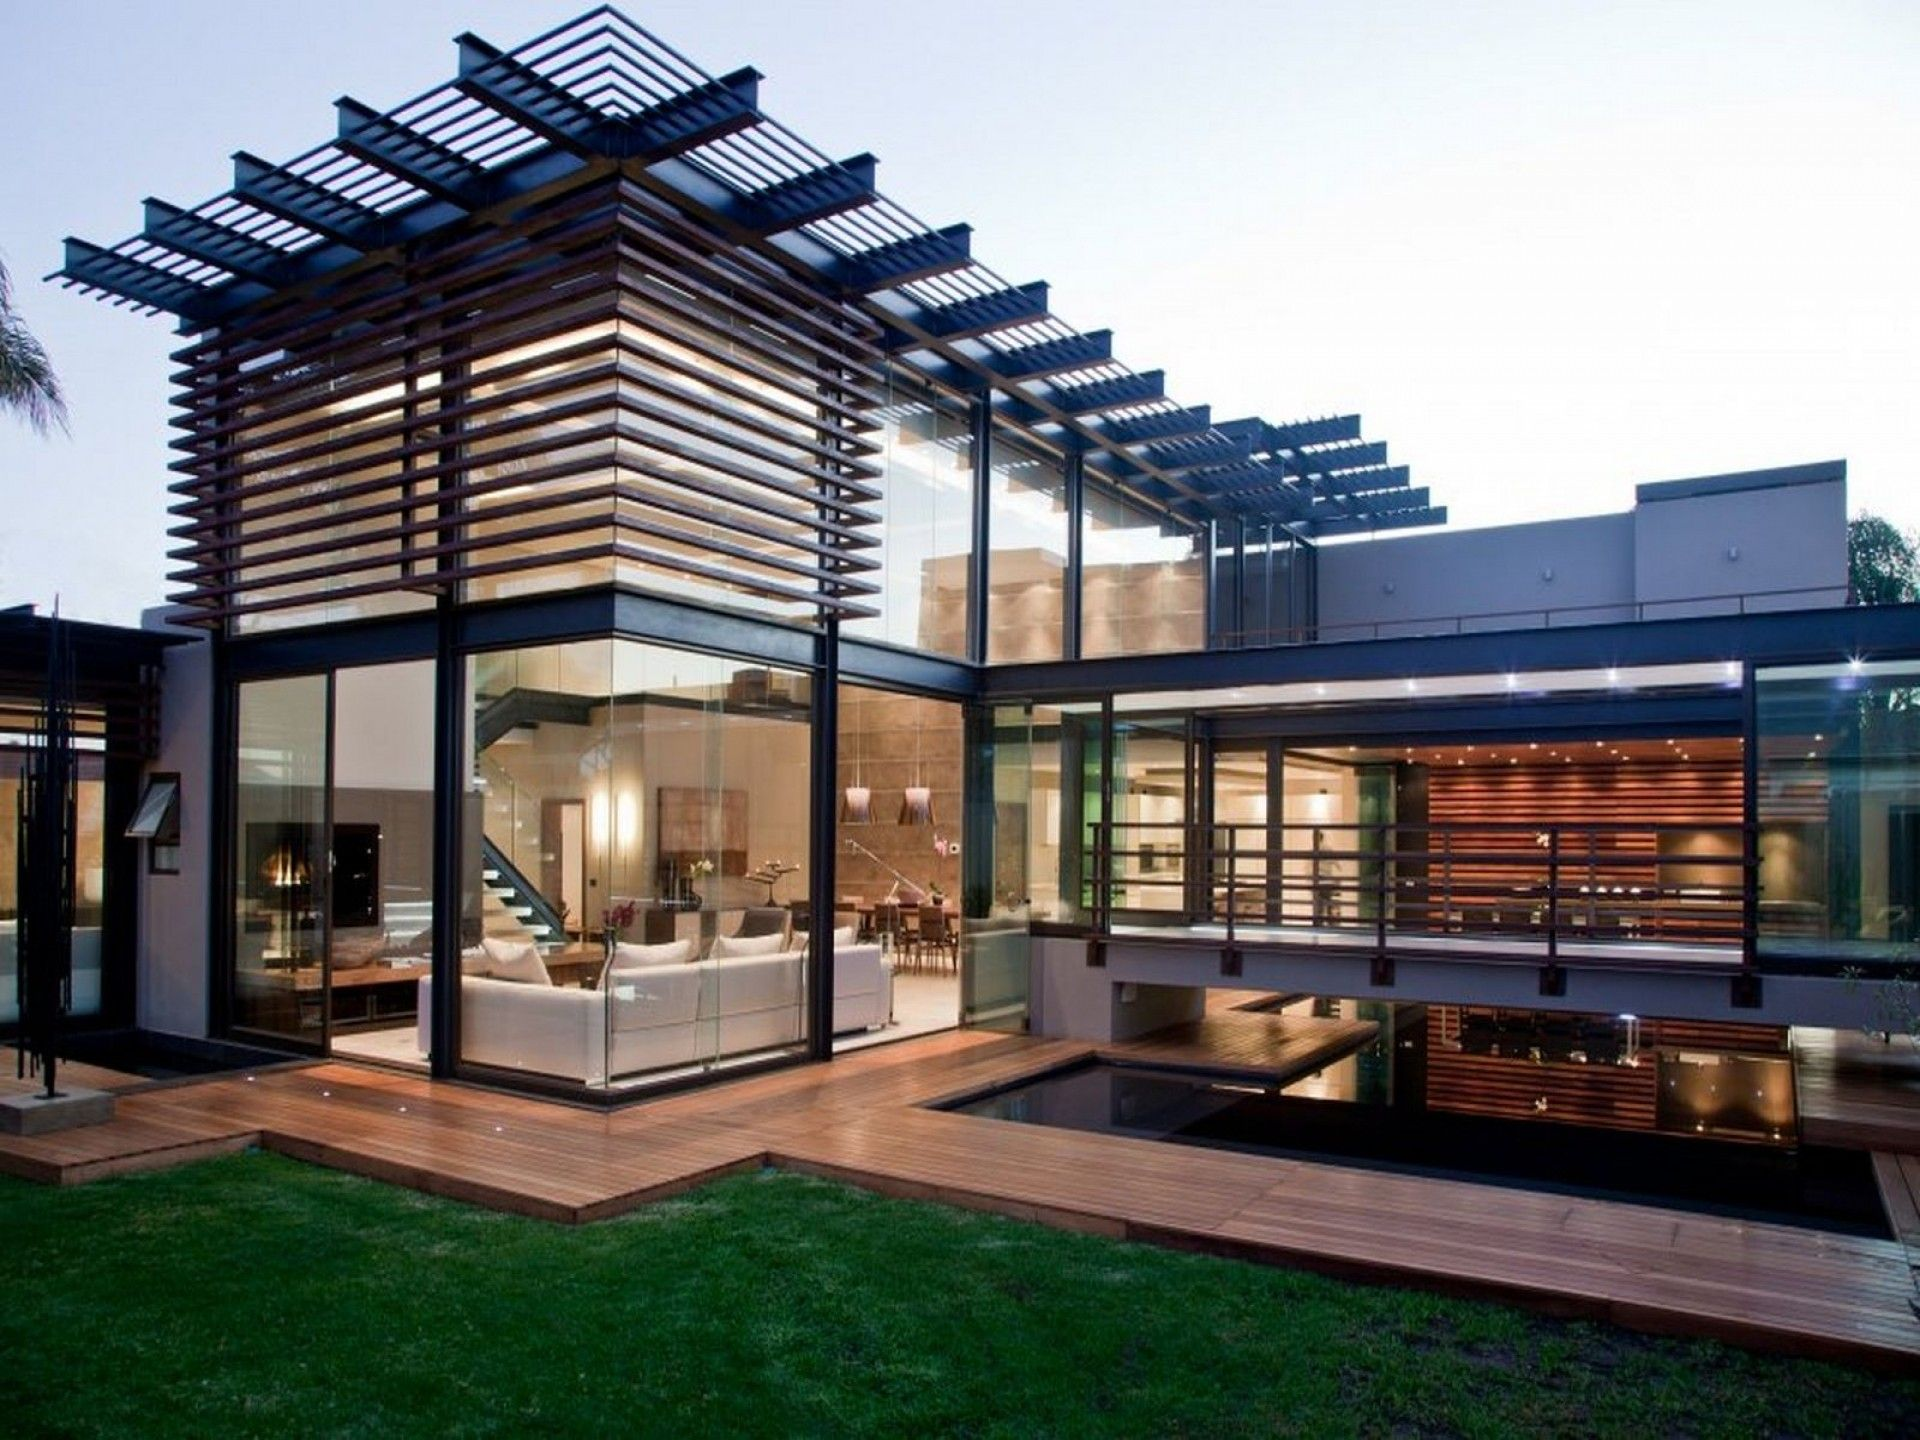 Awesome Black Glass Wood Simple Design Modern Exterior House Tropical Wall Lamp Pool Stainless Fence Floor